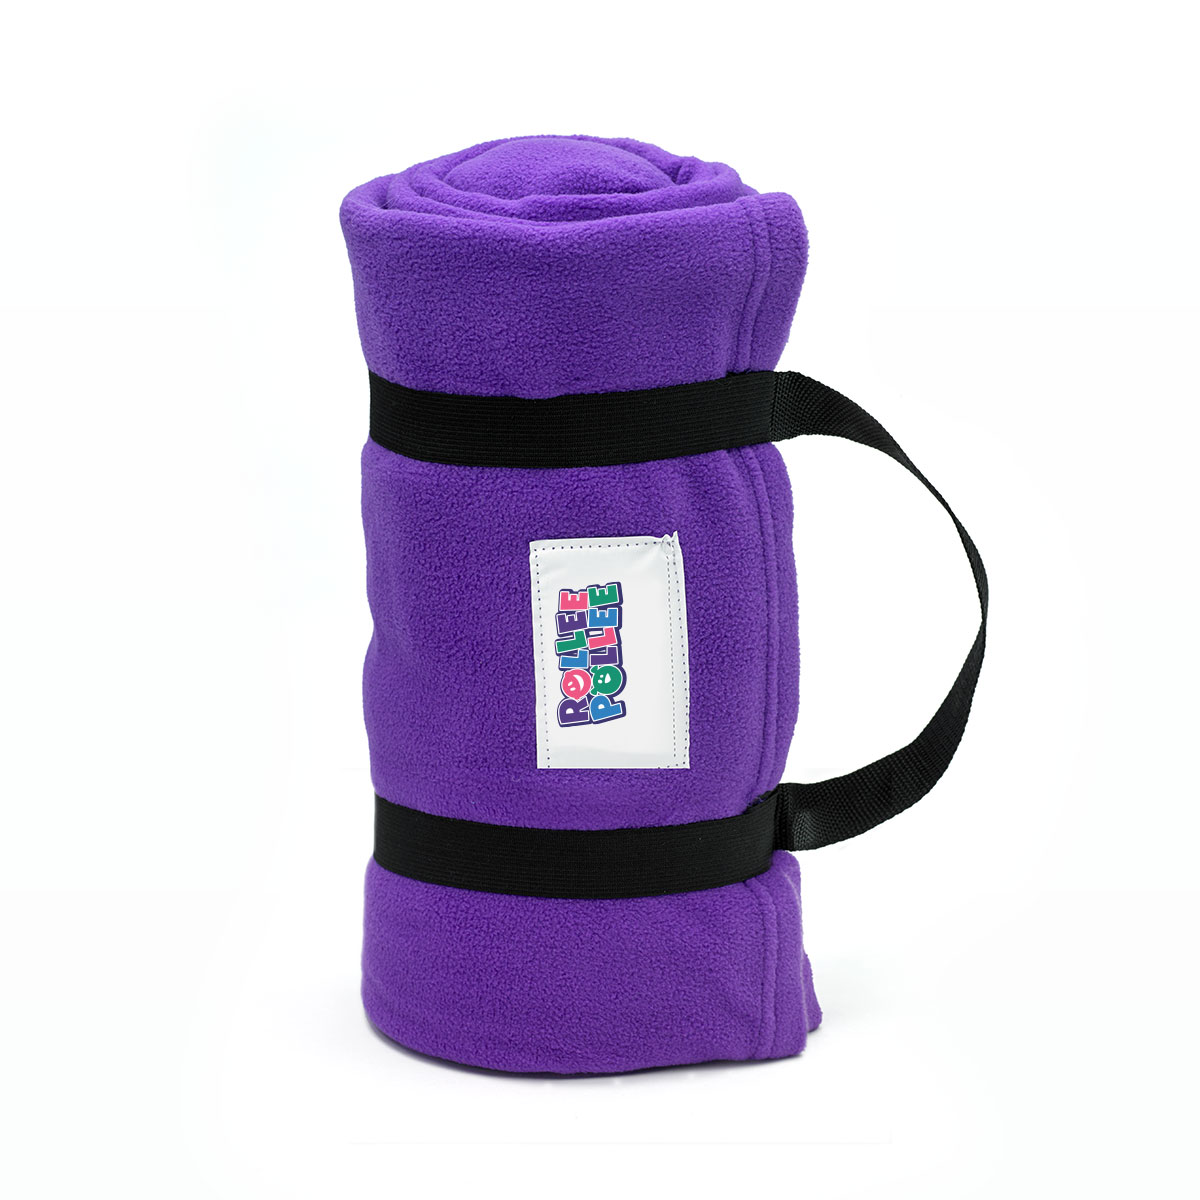 Rollee Pollee Nap Sac Purple Nap Mat Cover Pillow Blanket